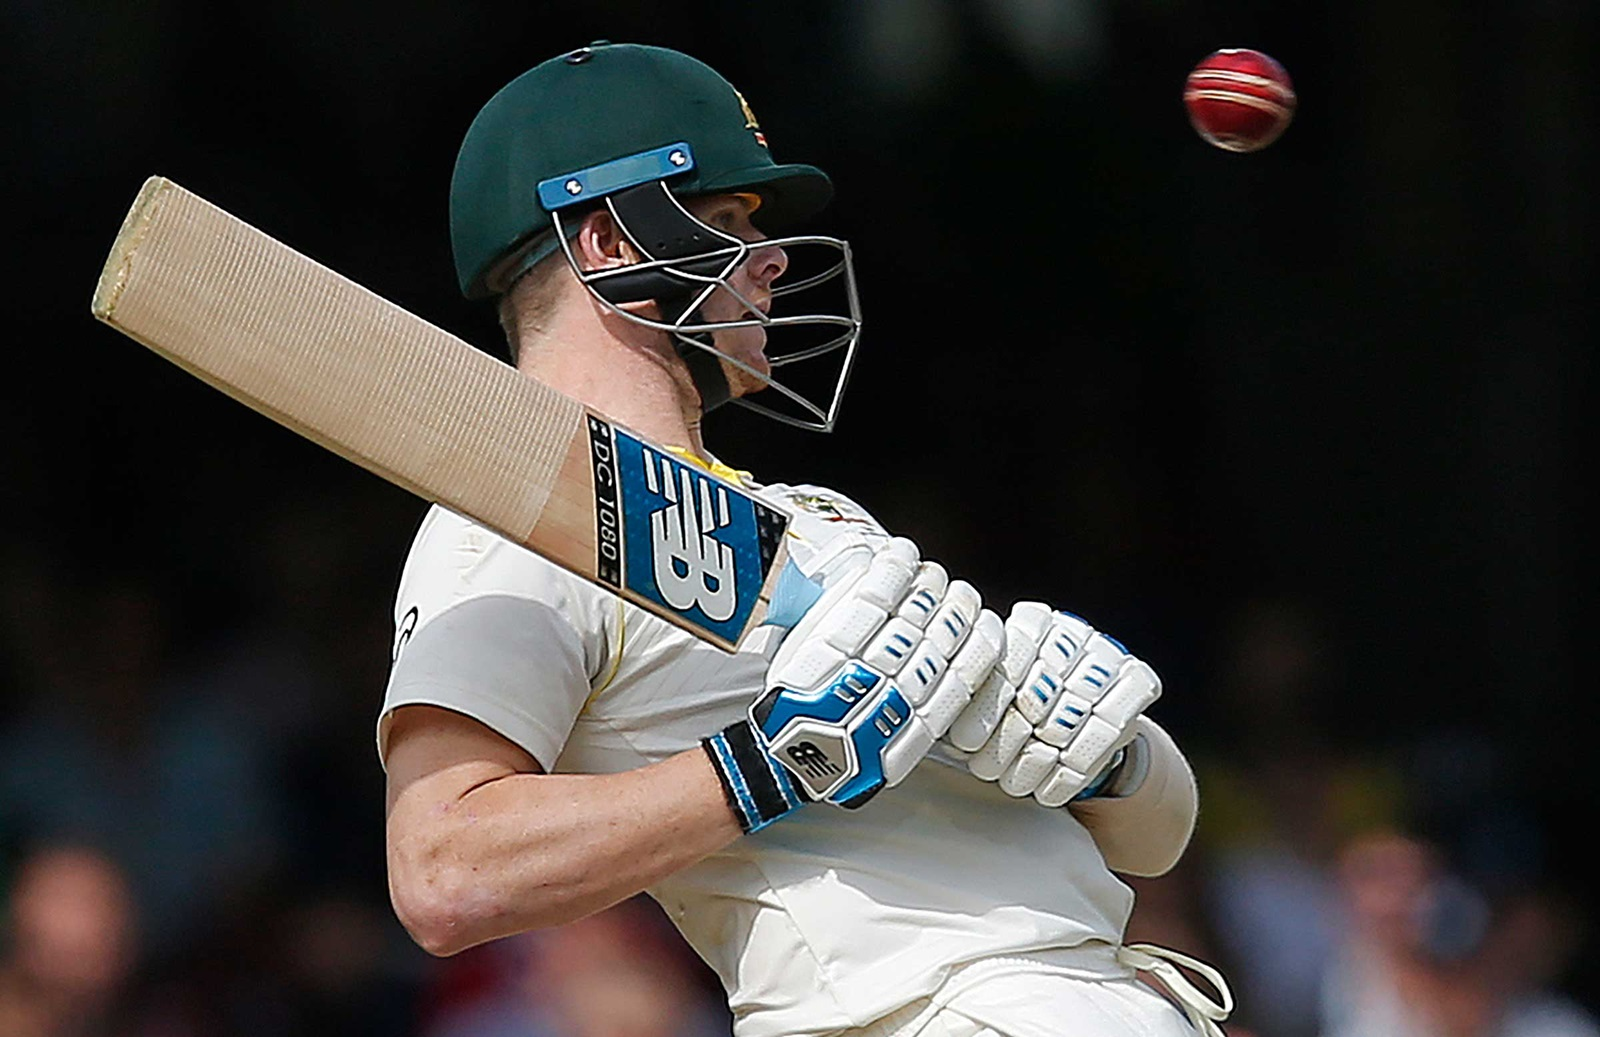 9a2aaa6f4 Neck guards may become mandatory for batters | cricket.com.au